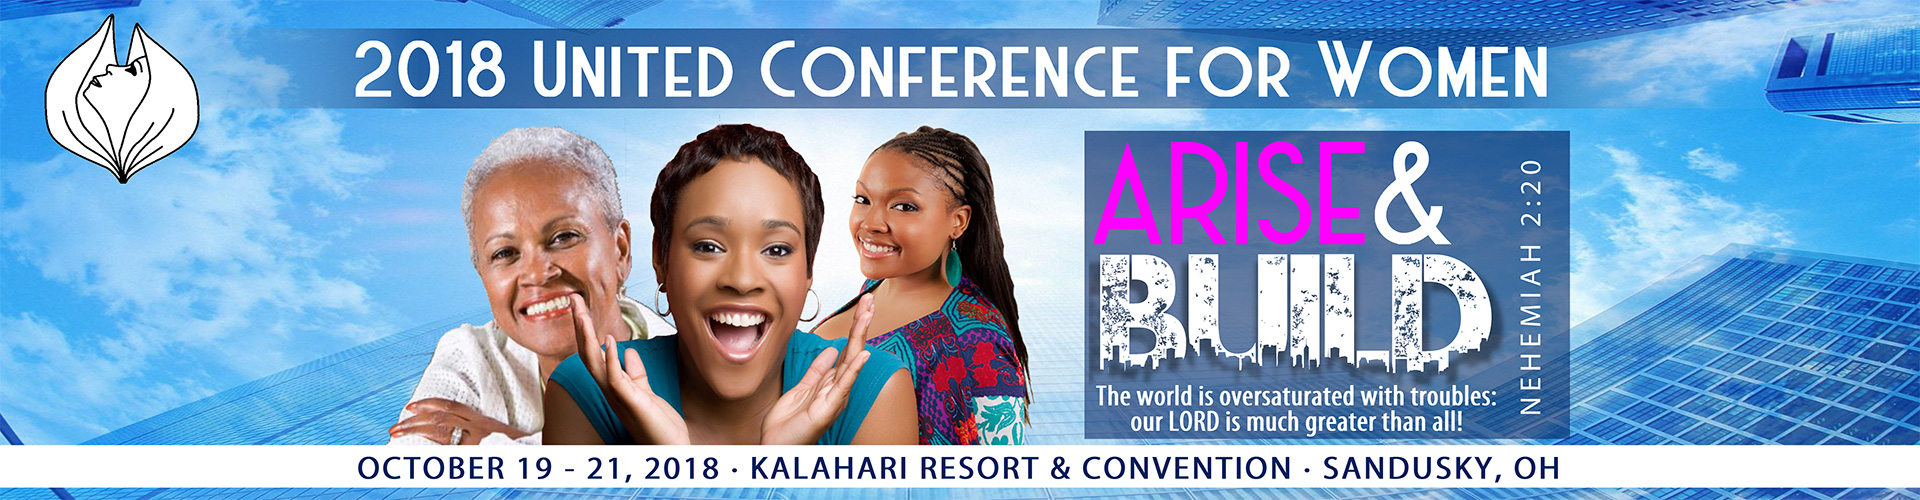 2018 United Conference for Women